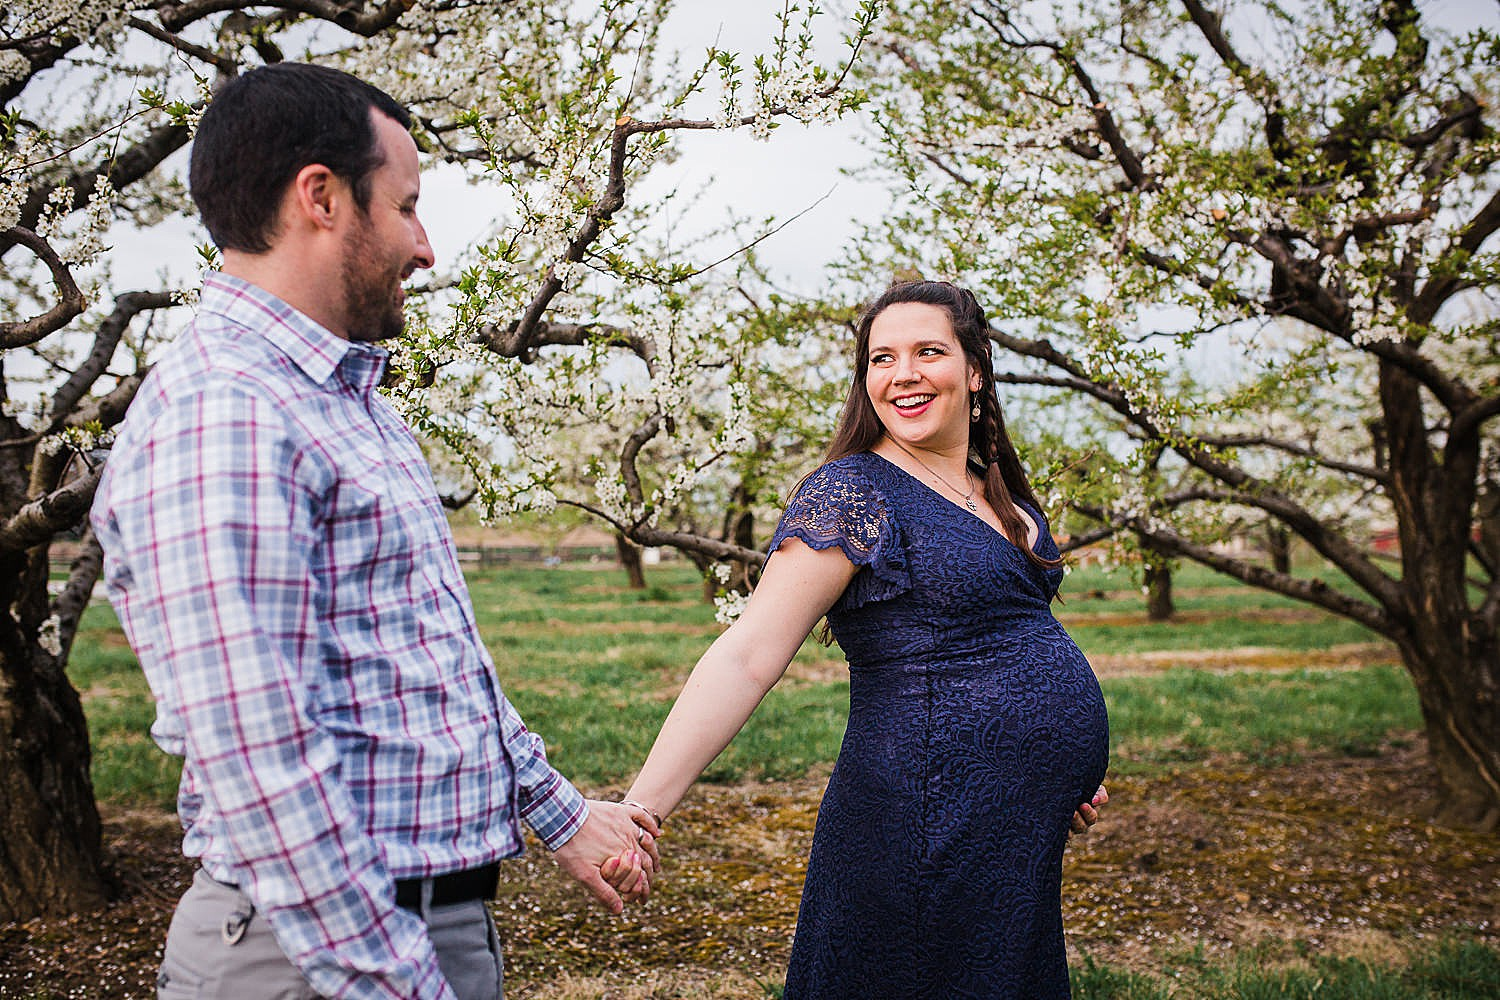 Photo of a pregnant woman in a blue lace dress walking with her husband in an orchard of flowers.